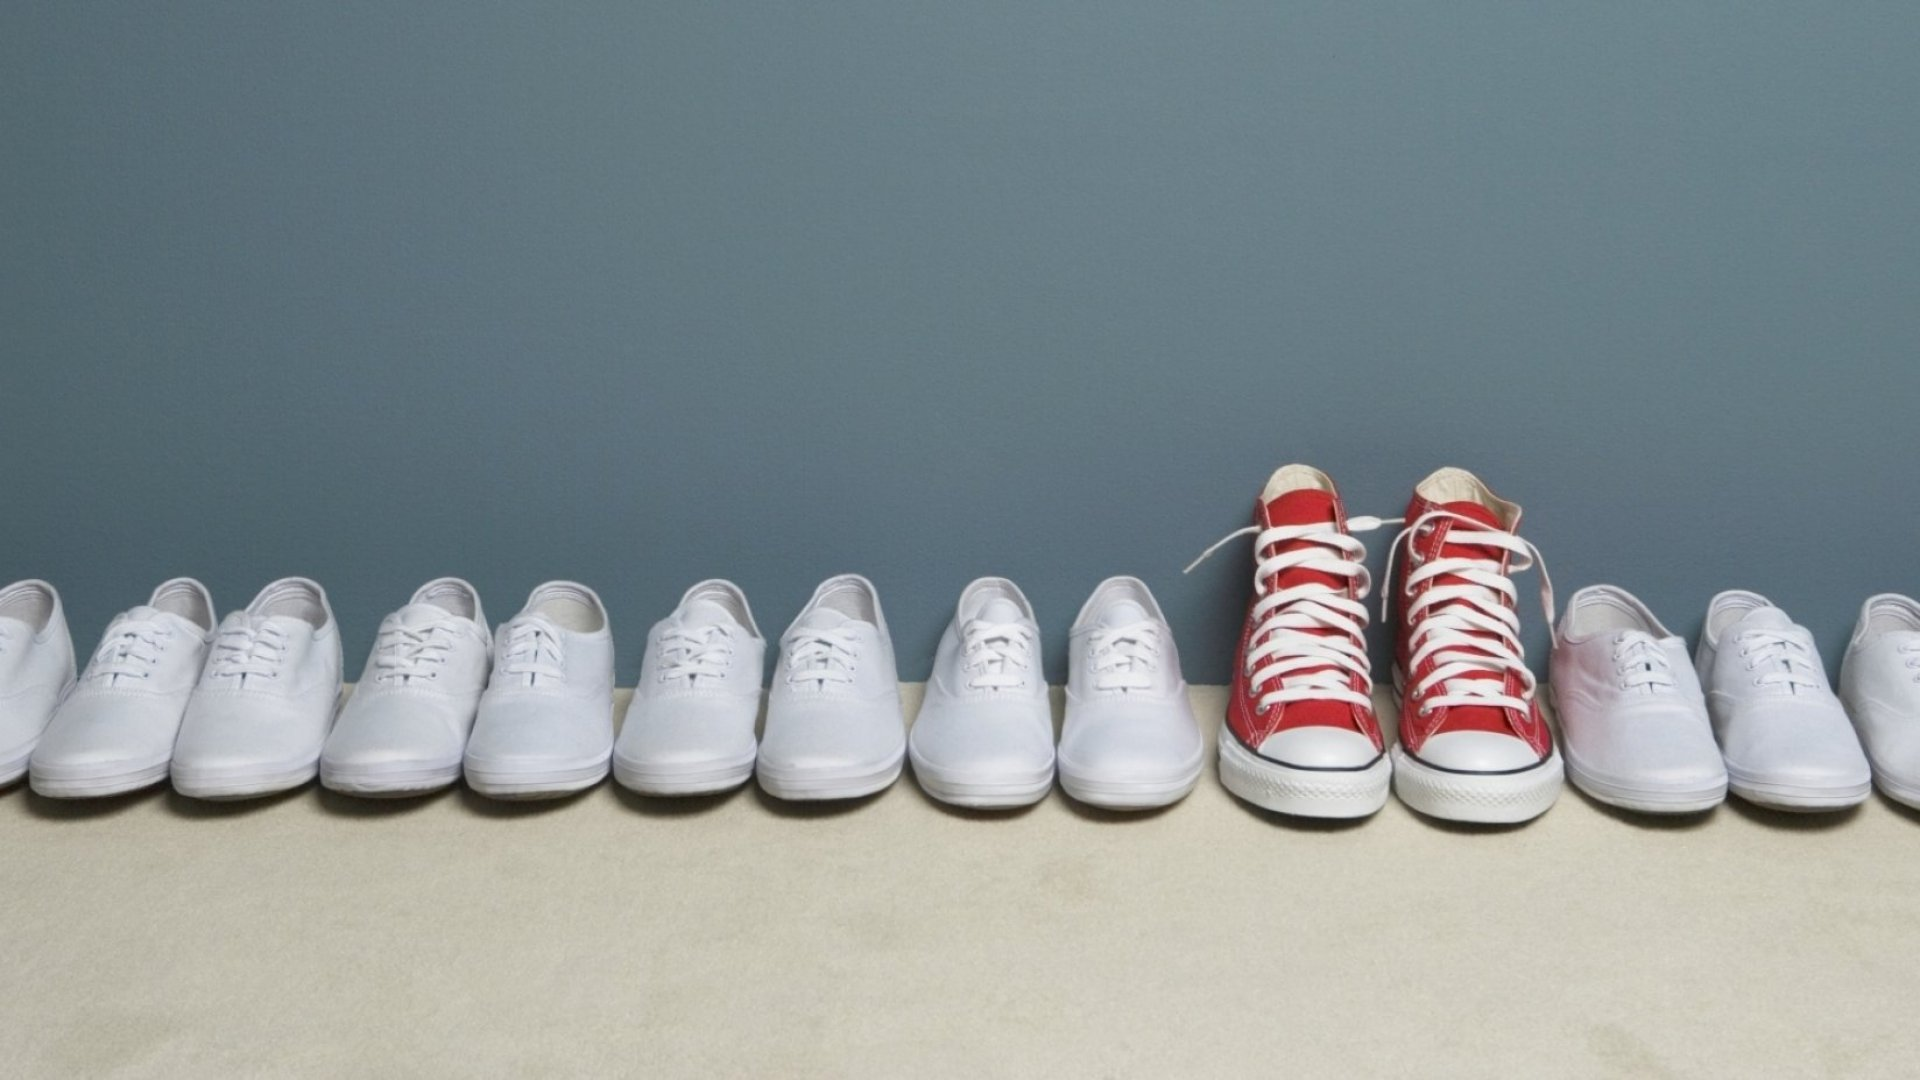 How to Keep Your Personal Brand in Line With Company Values